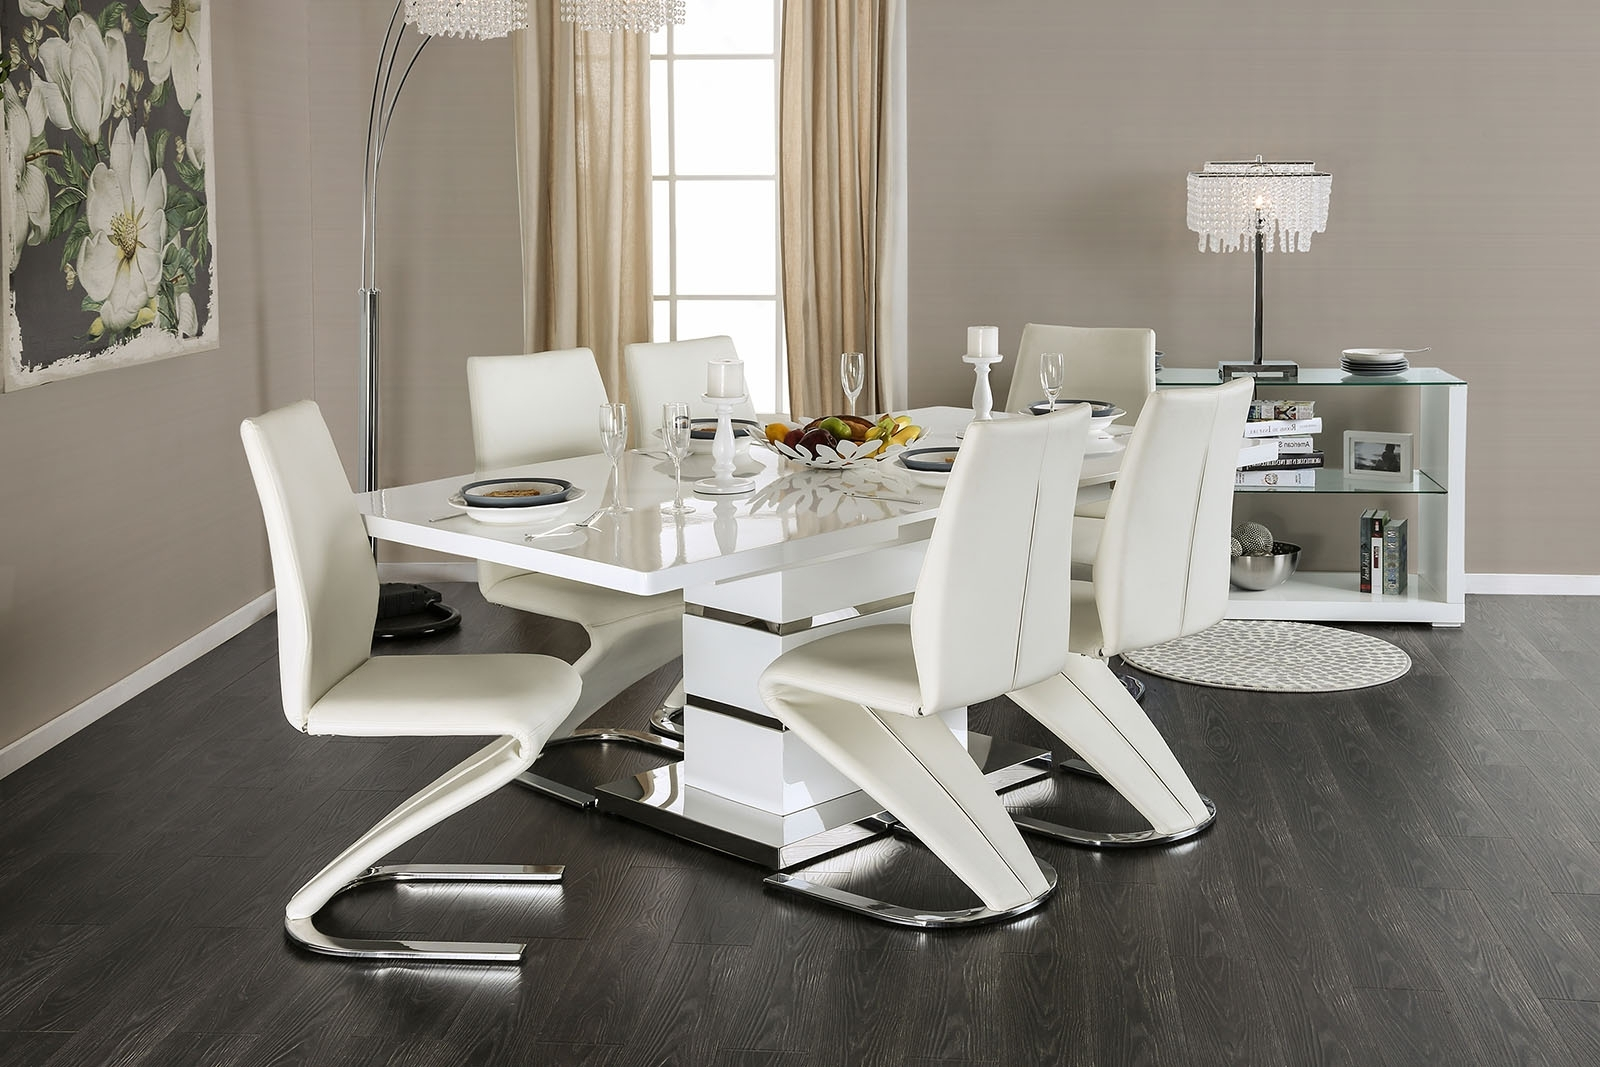 Famous High Gloss Dining Sets In Midvale Contemporary Style White High Gloss Lacquer Finish & Chrome (View 9 of 25)